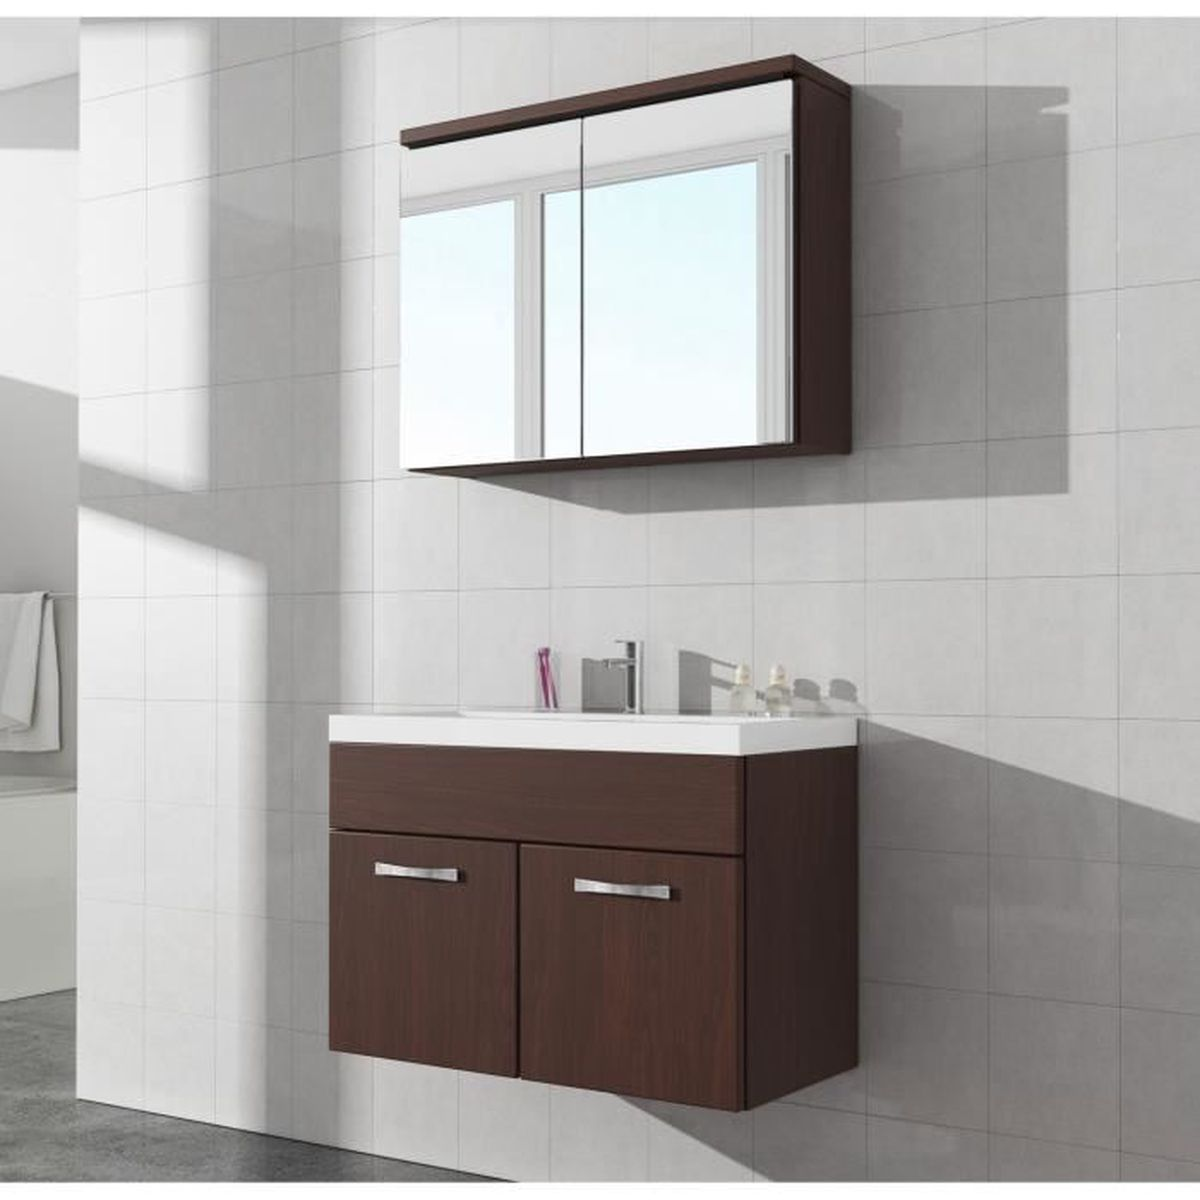 meuble de salle de bain paso 02 armoire miroir meuble lavabo vier meuble lavabo ch ne fonc. Black Bedroom Furniture Sets. Home Design Ideas